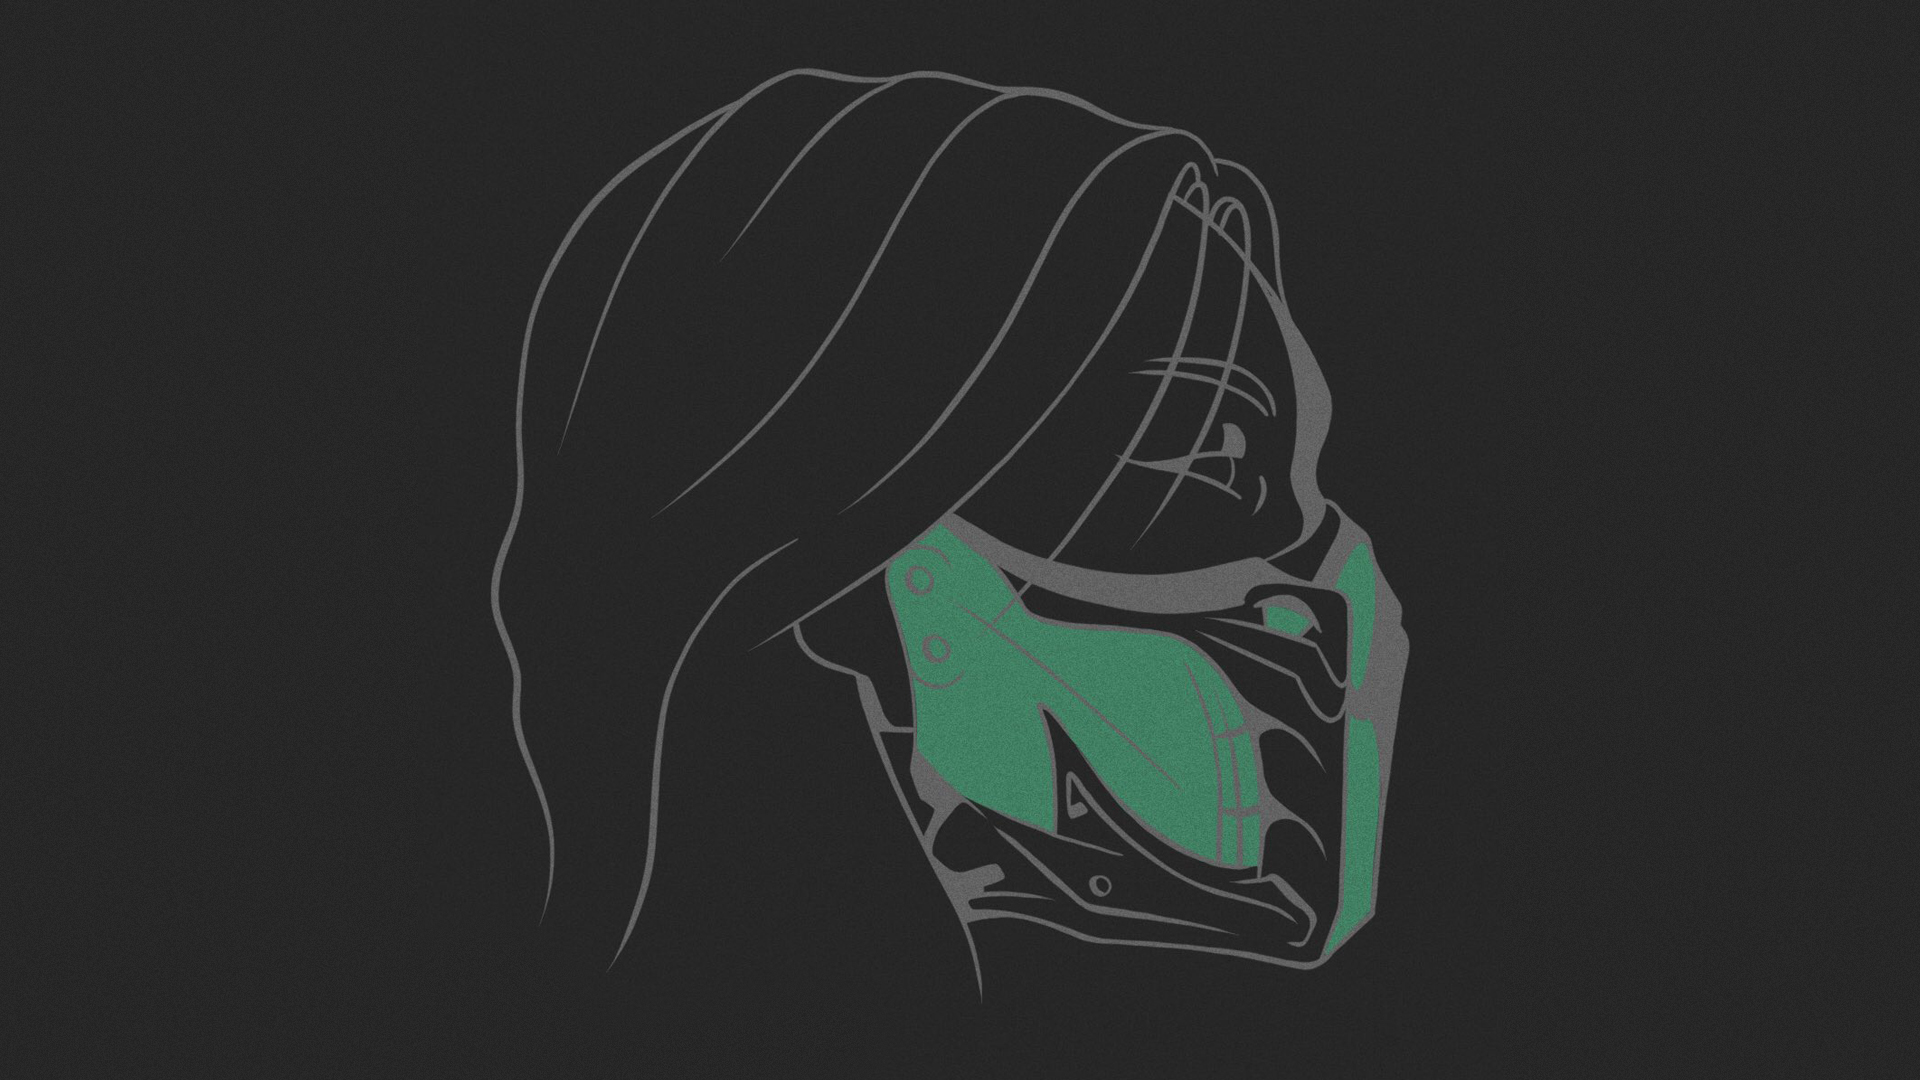 Mortal Kombat background - Jade's head